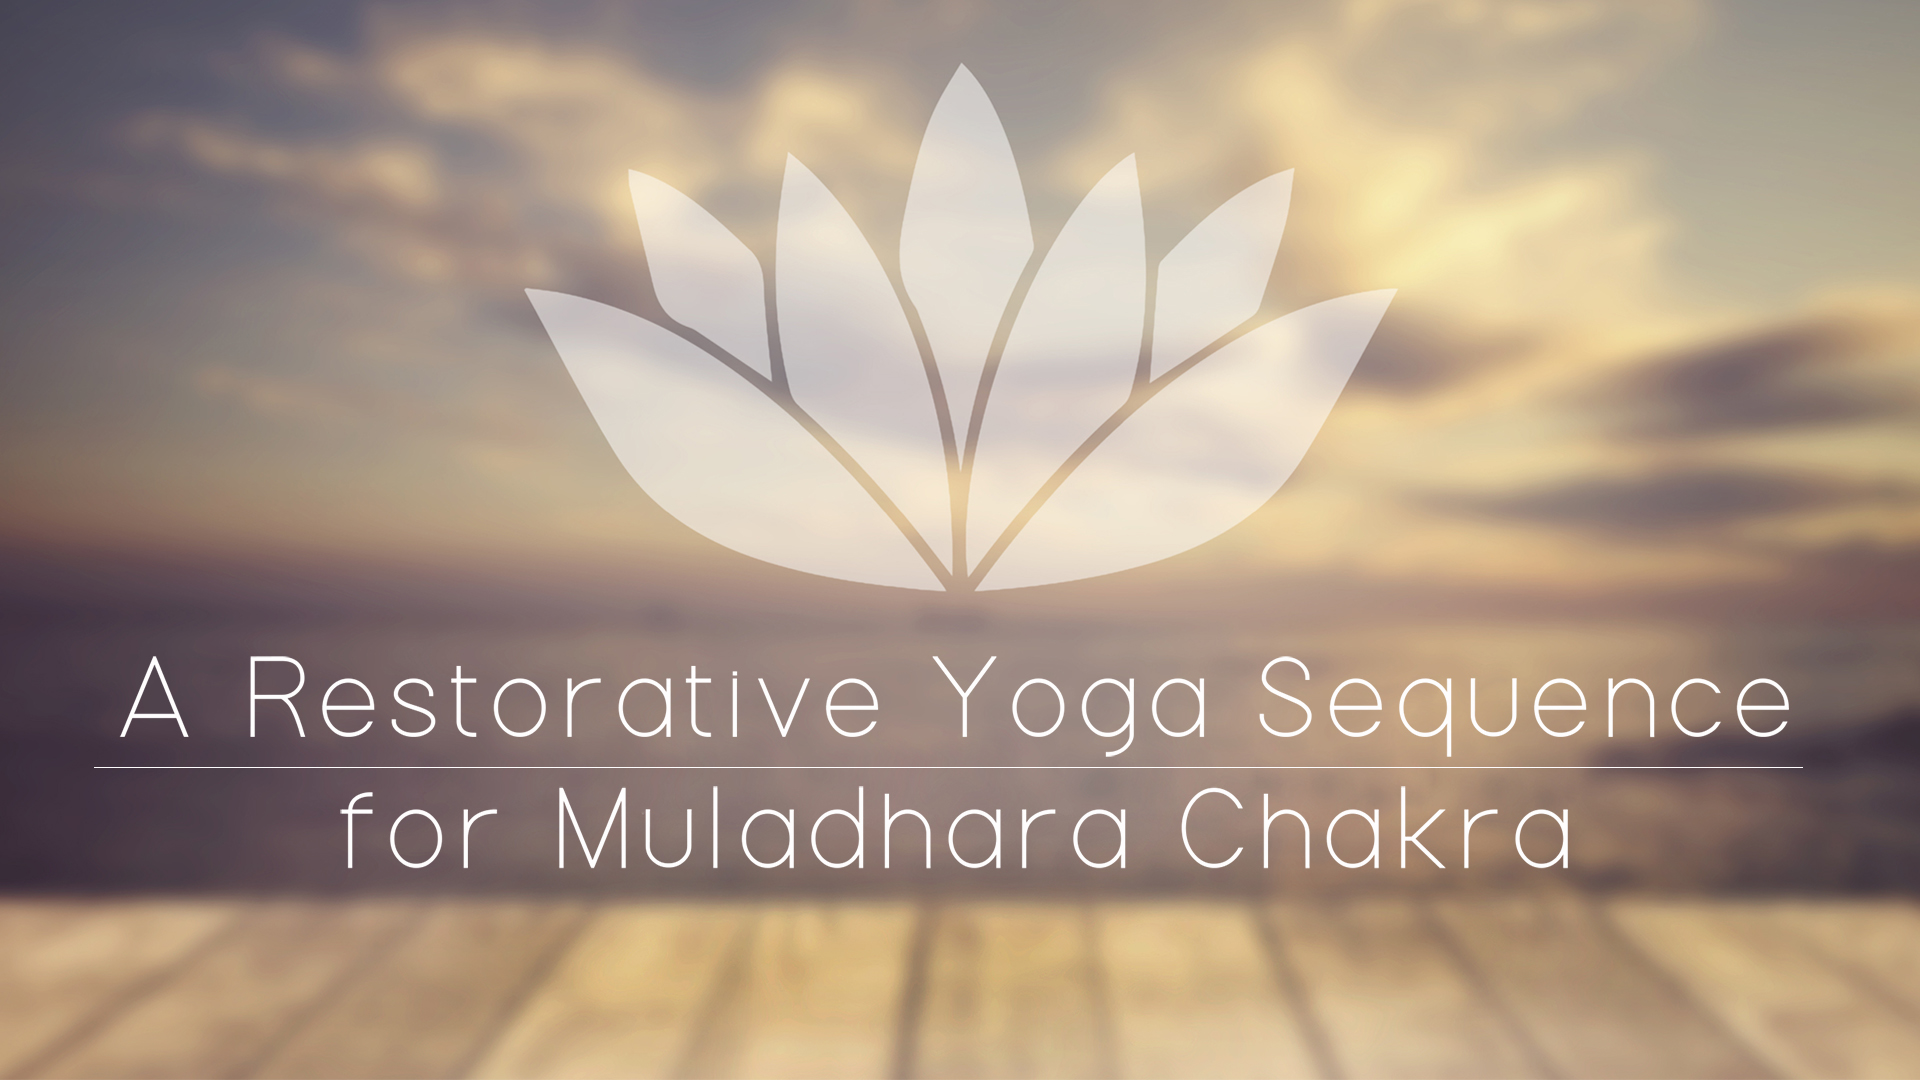 A Restorative Yoga Sequence for Muladhara Chakra